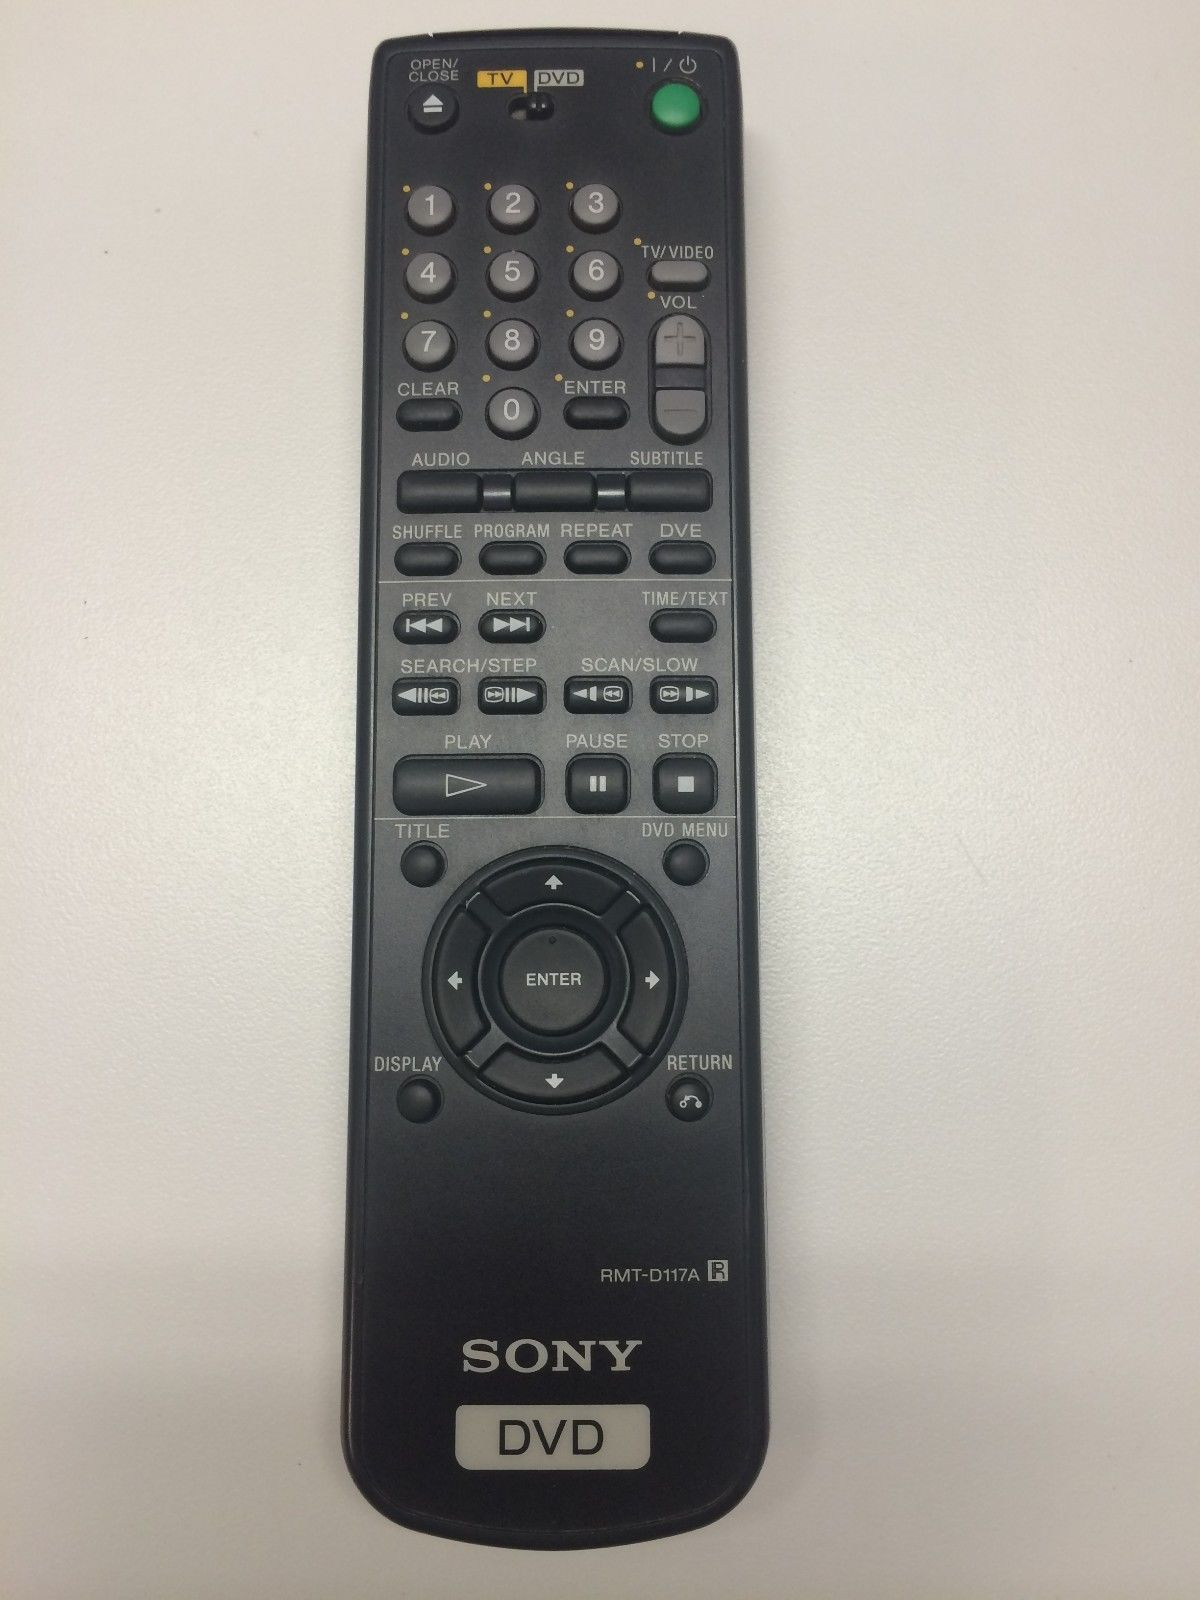 SONY RMT-D117A Remote Control for DVPS56, DVPS560D Tested